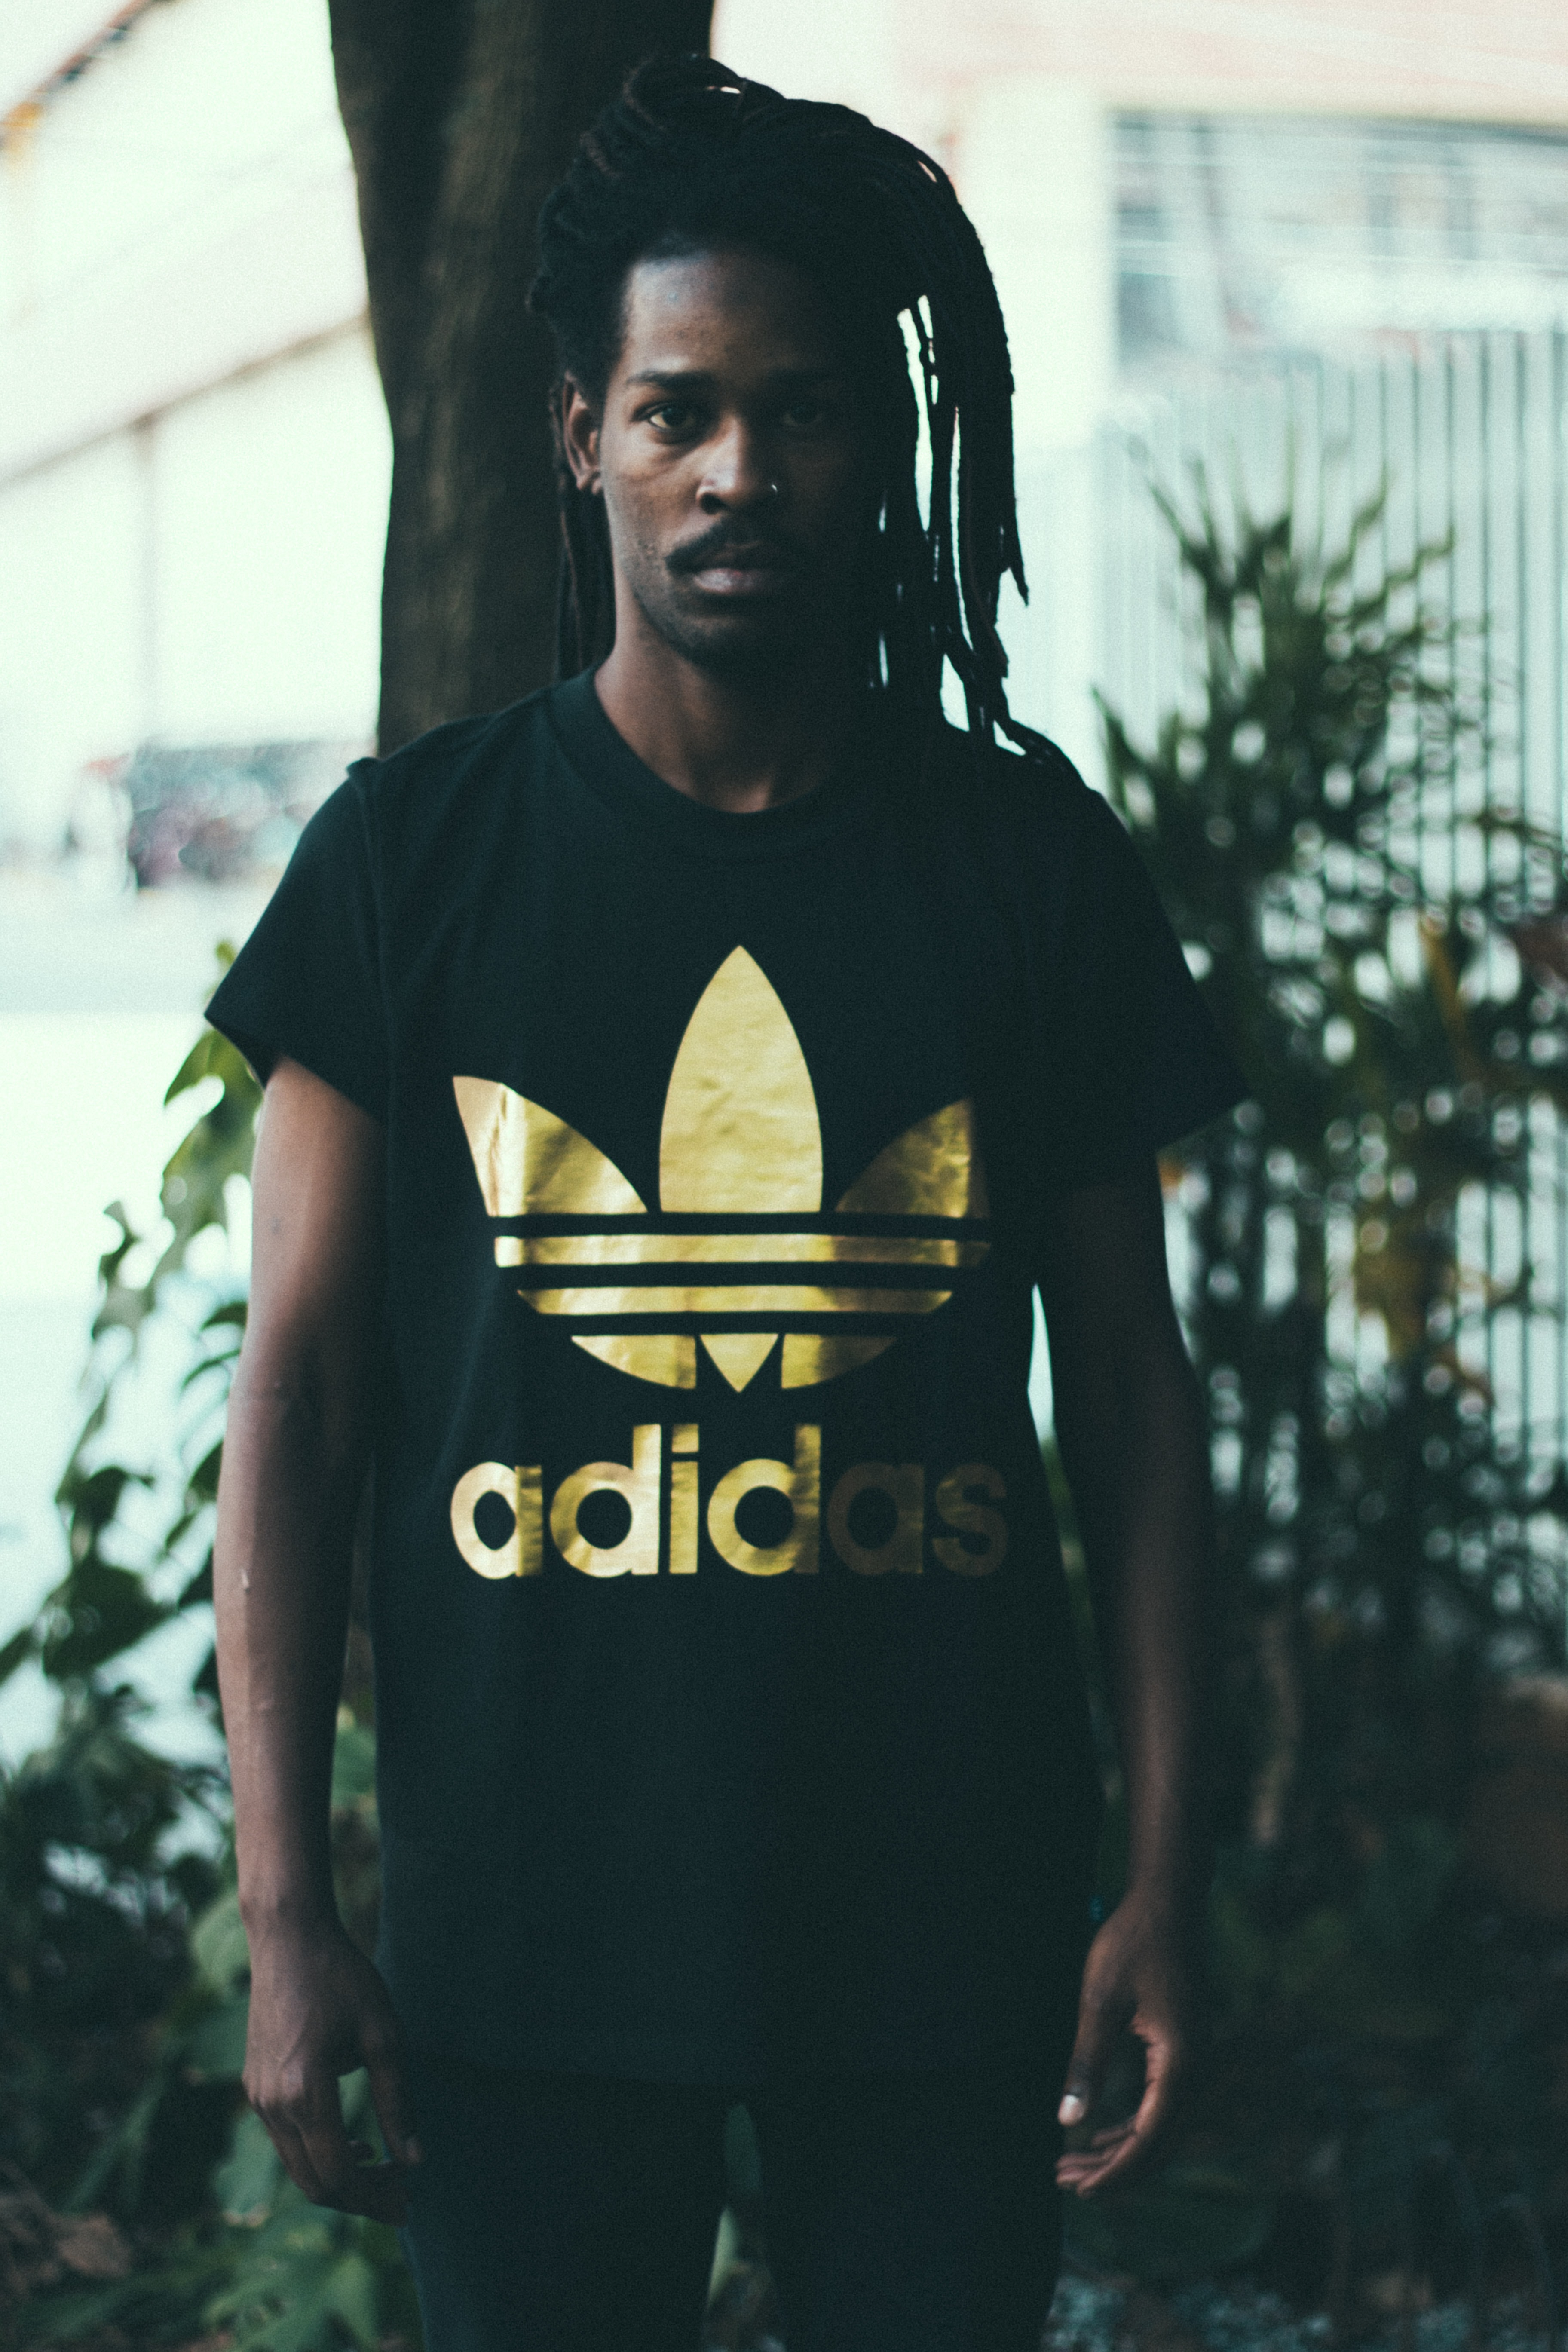 depth of field photography of man wearing black and gold adidas graphic crew-neck T-shirt standing in front of tree